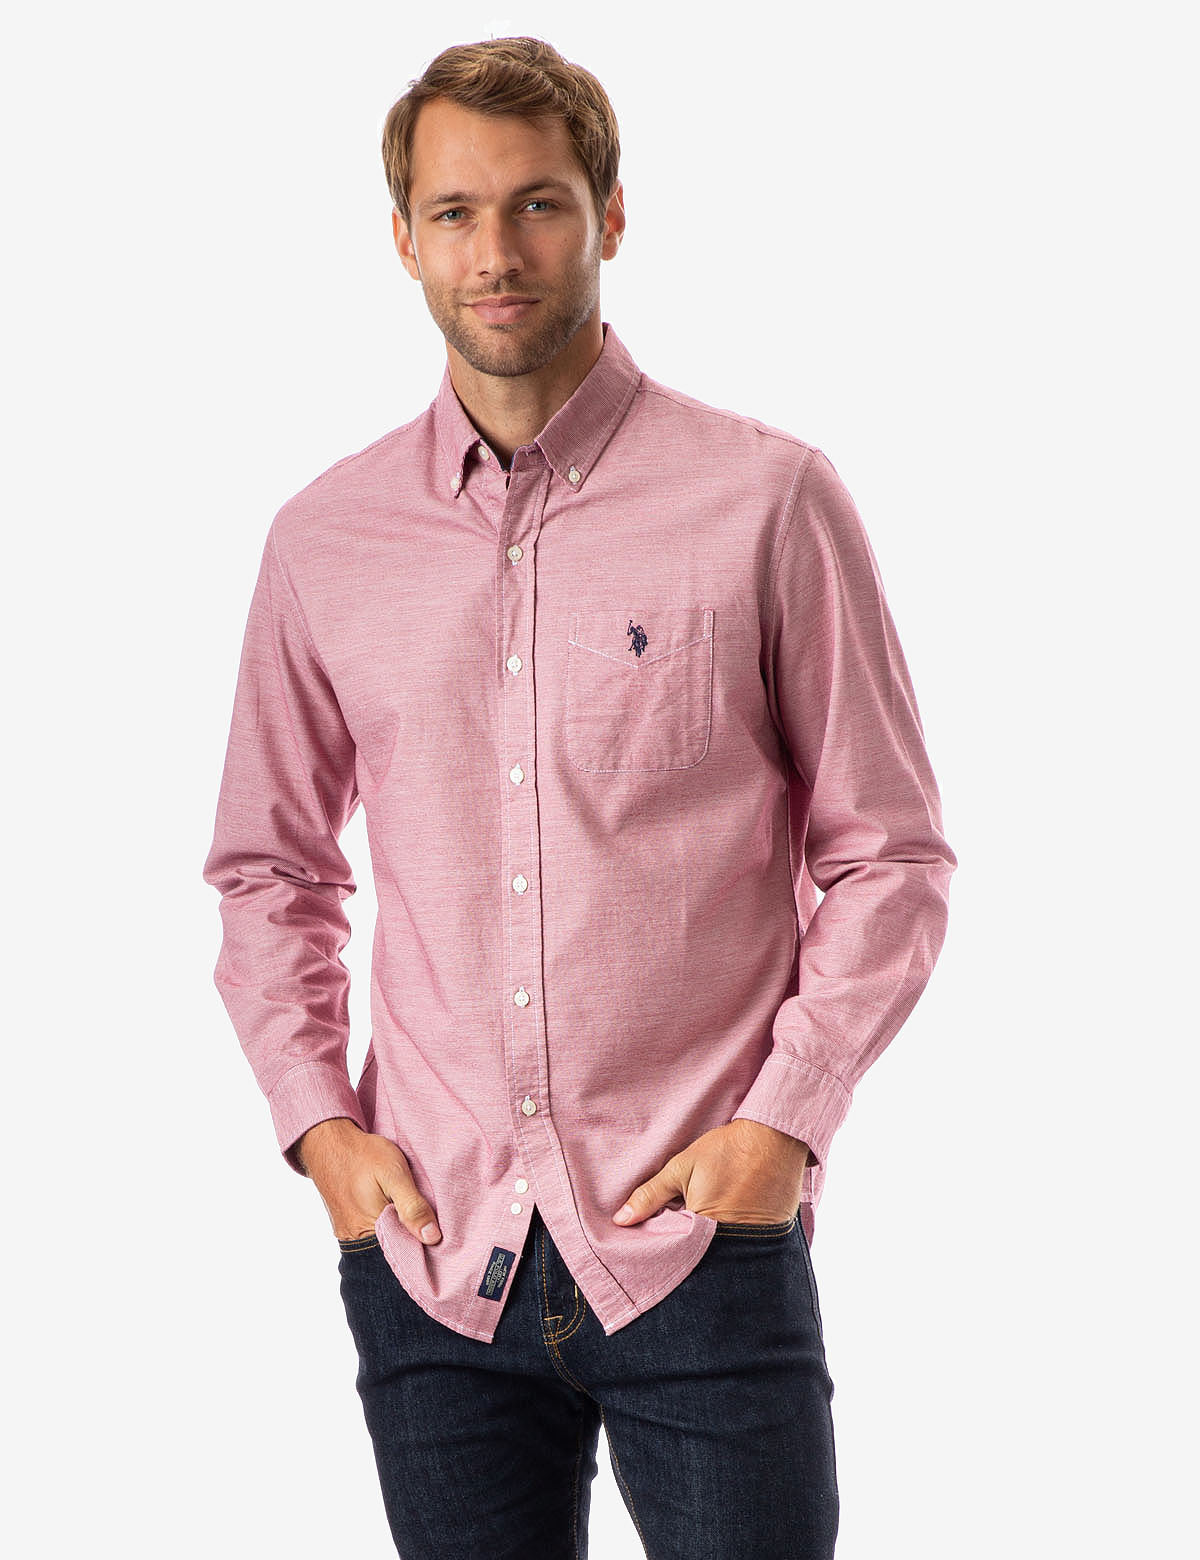 HORIZONTAL STRIPED TEXTURED SHIRT - U.S. Polo Assn.